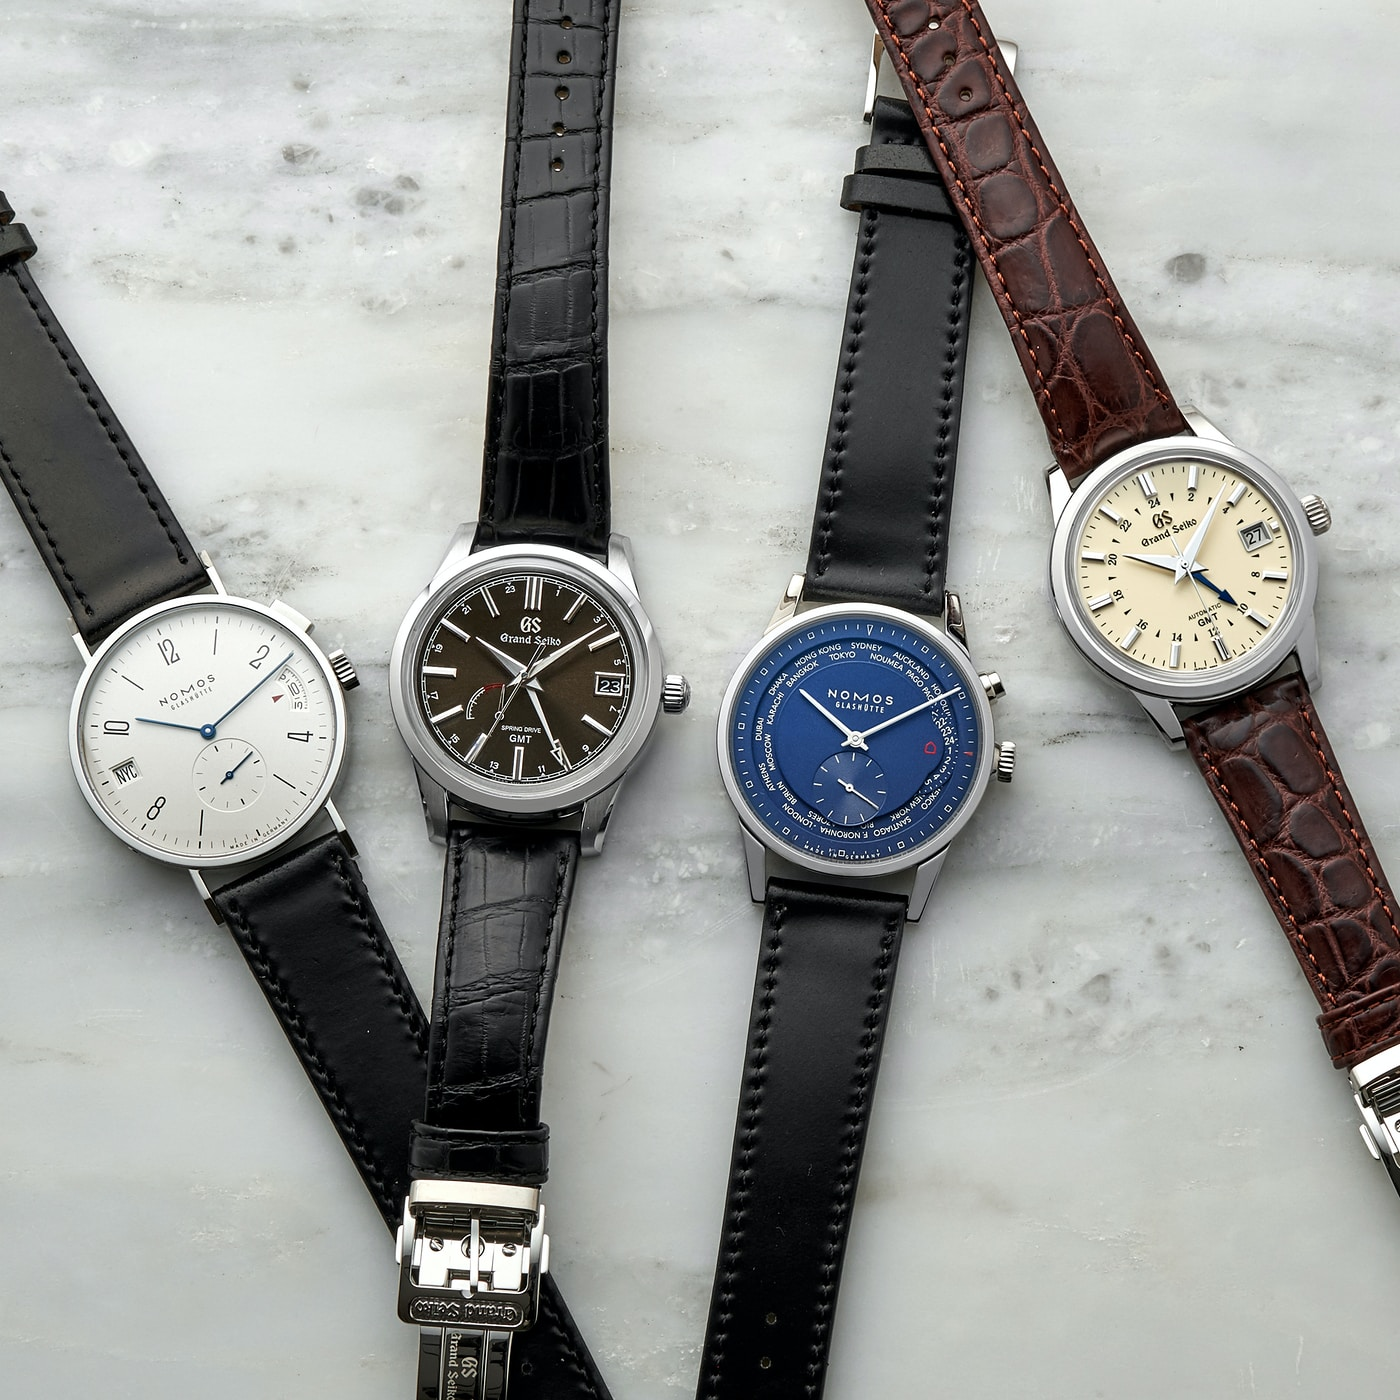 In The Shop Four Great Travel Watches And Accessories For Life On